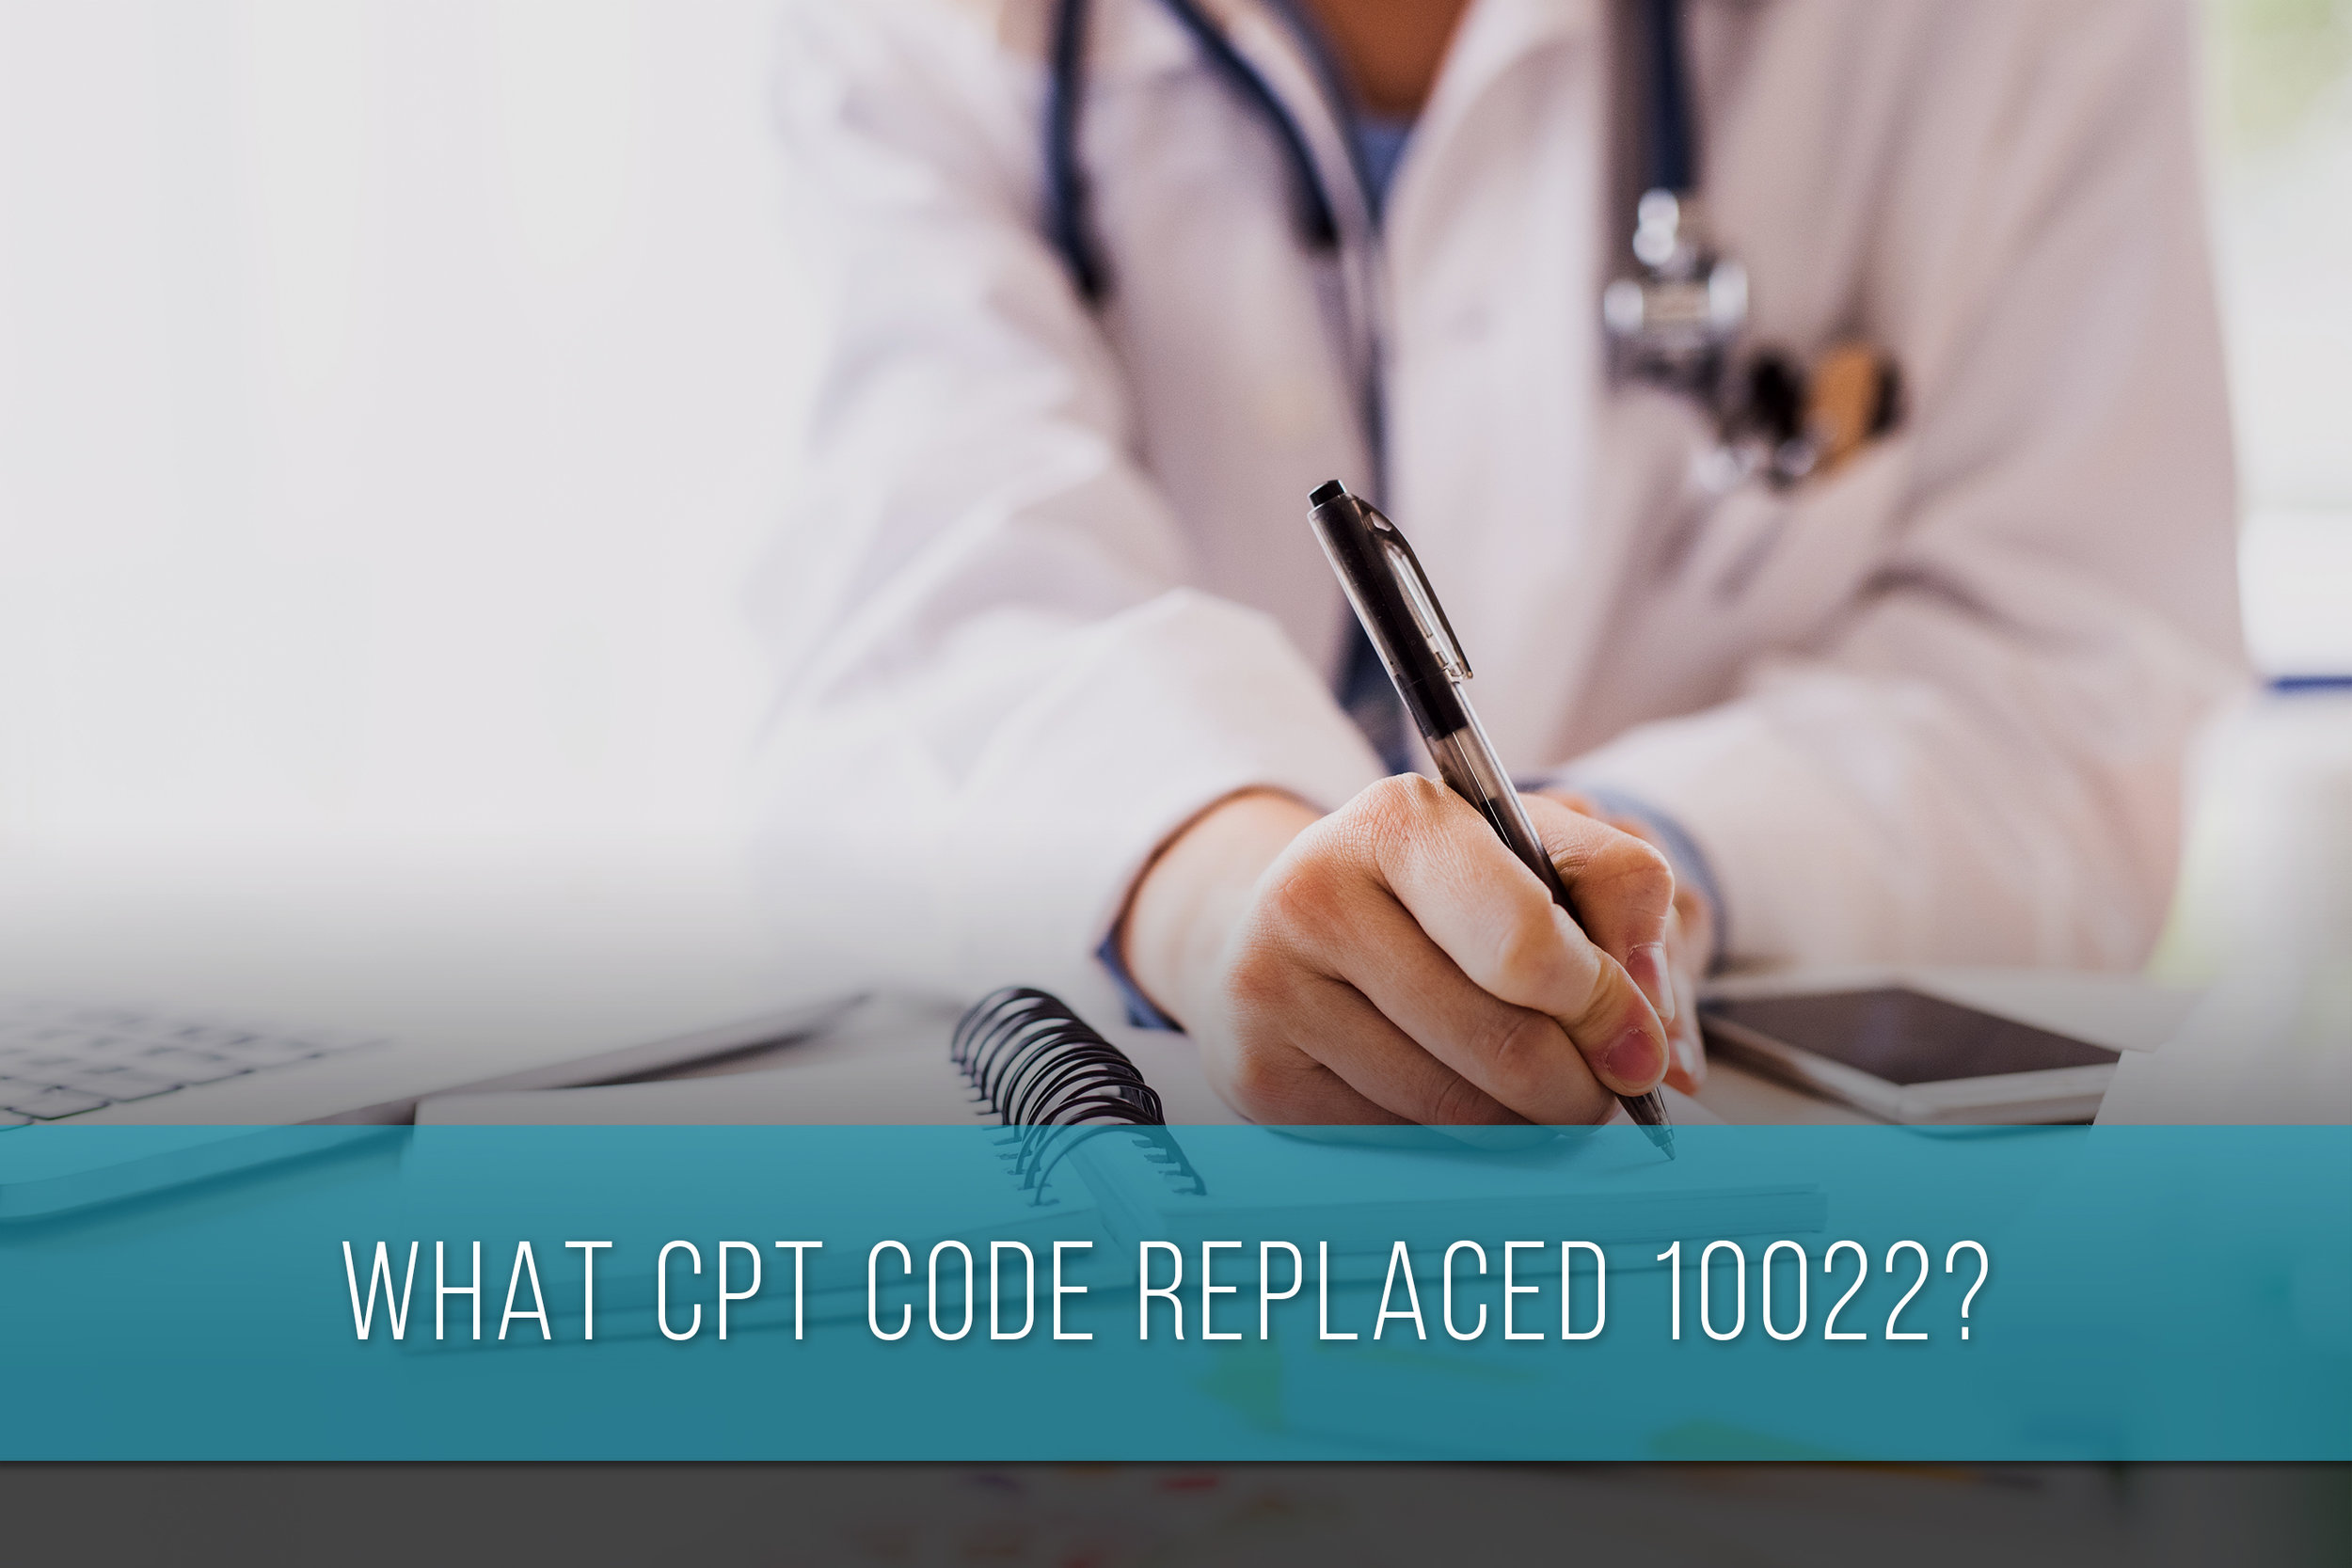 What-CPT-code-replaced-10022.jpg